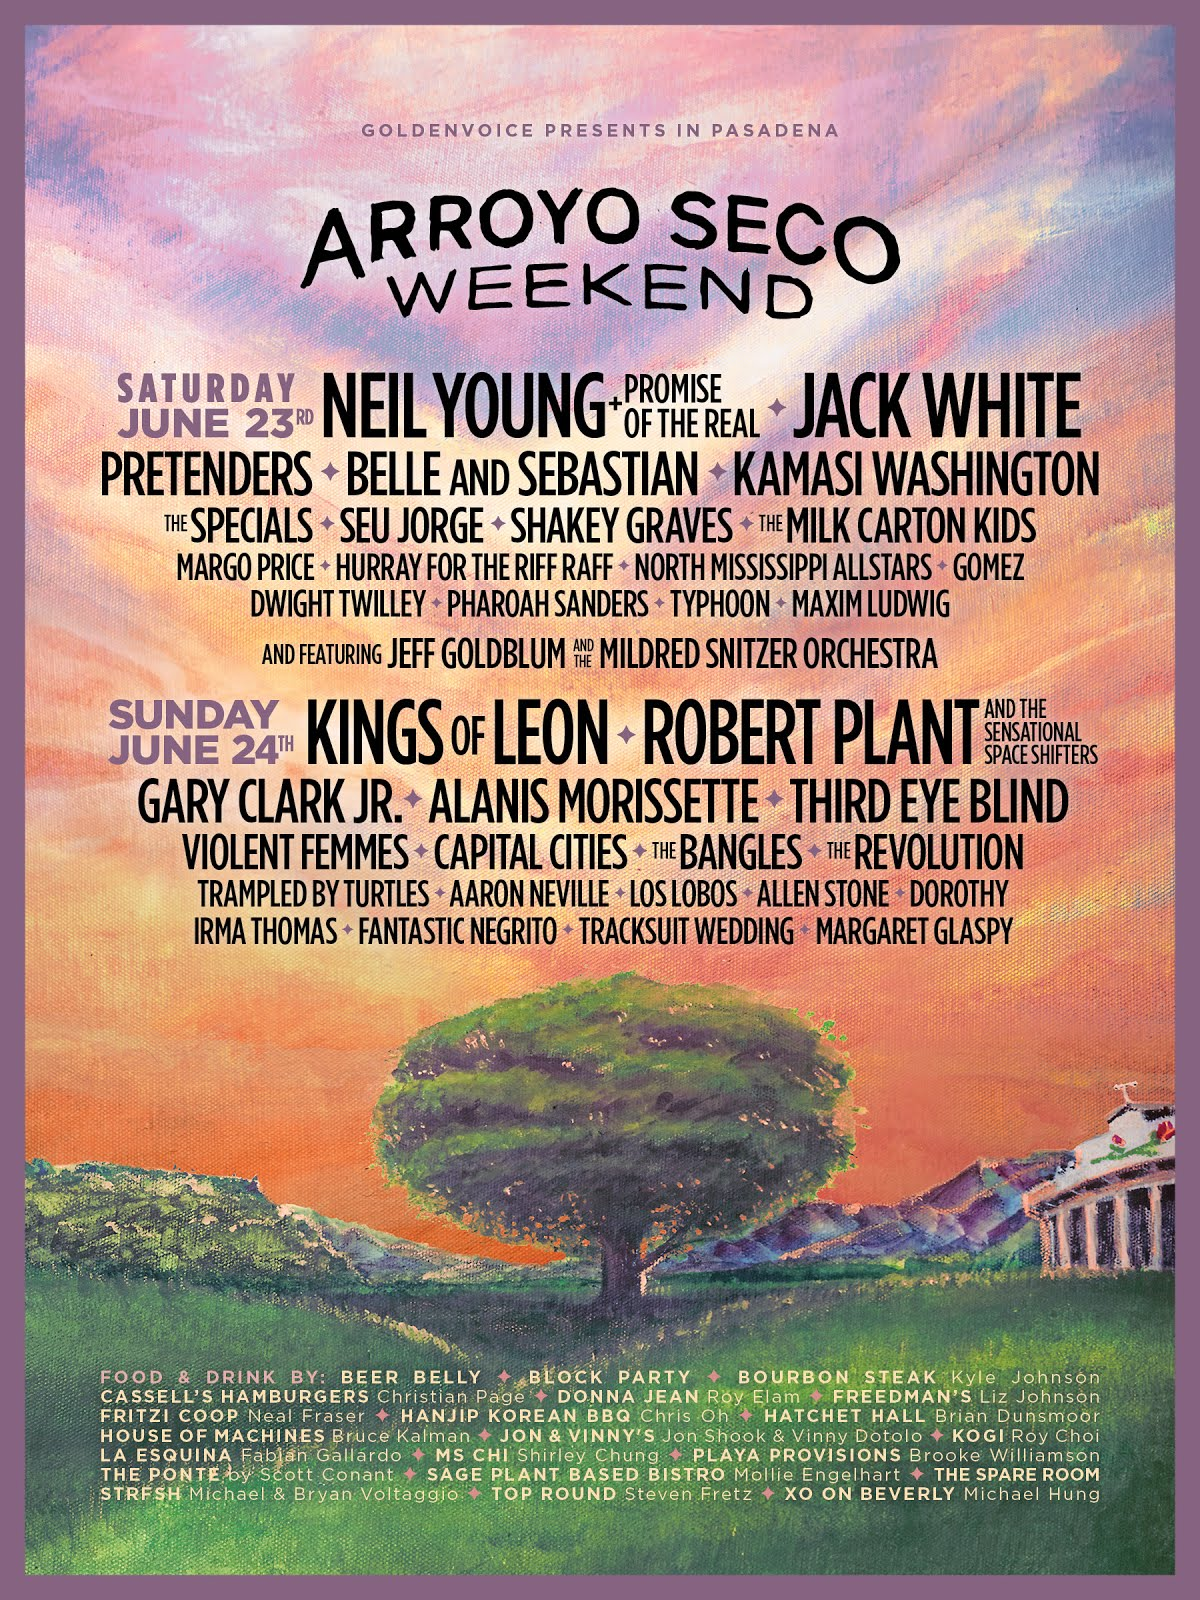 Get Tickets To Arroyo Seco Weekend Festival in Pasadena - June 23 & 24!